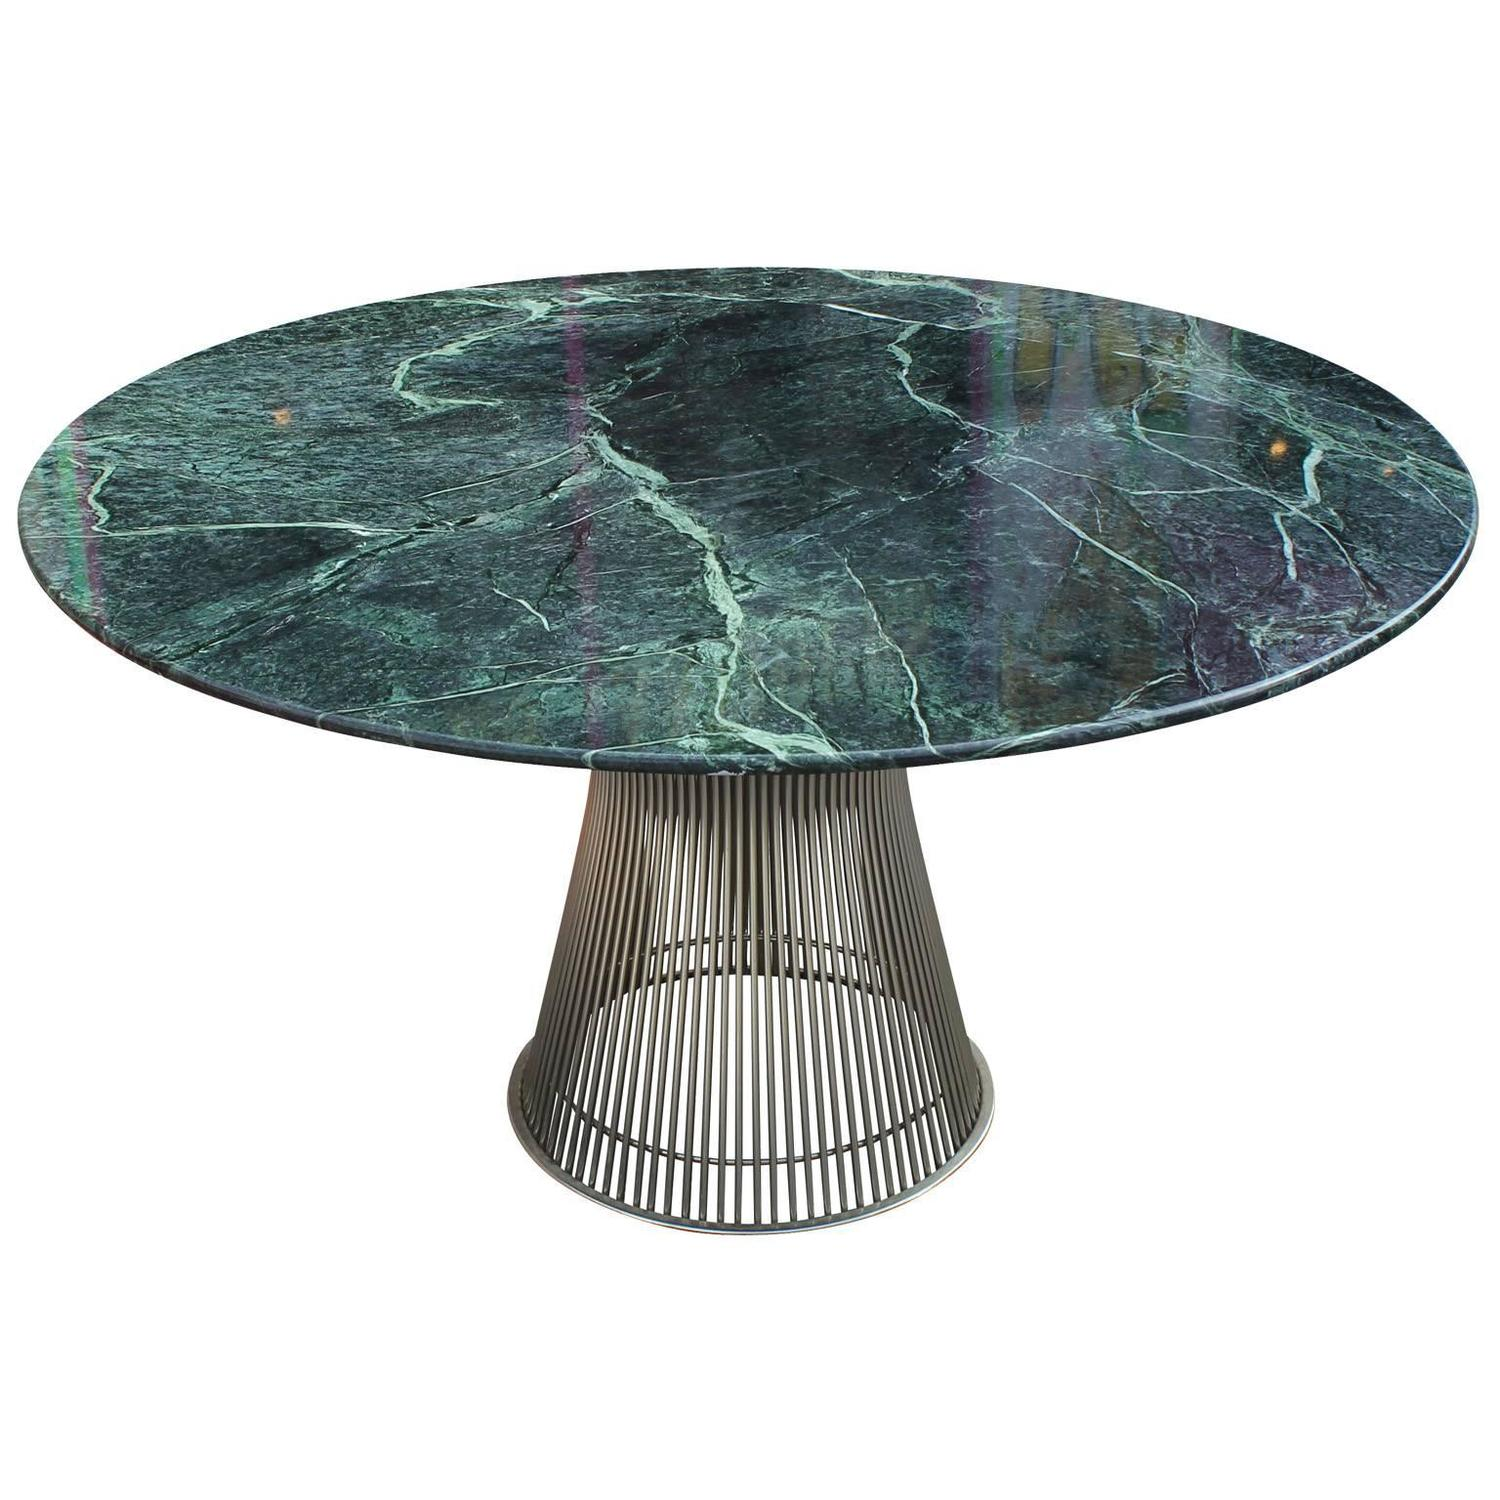 Iconic Warren Platner Dining Table with Green Marble Top  : platner2orgz from www.1stdibs.com size 1500 x 1500 jpeg 186kB